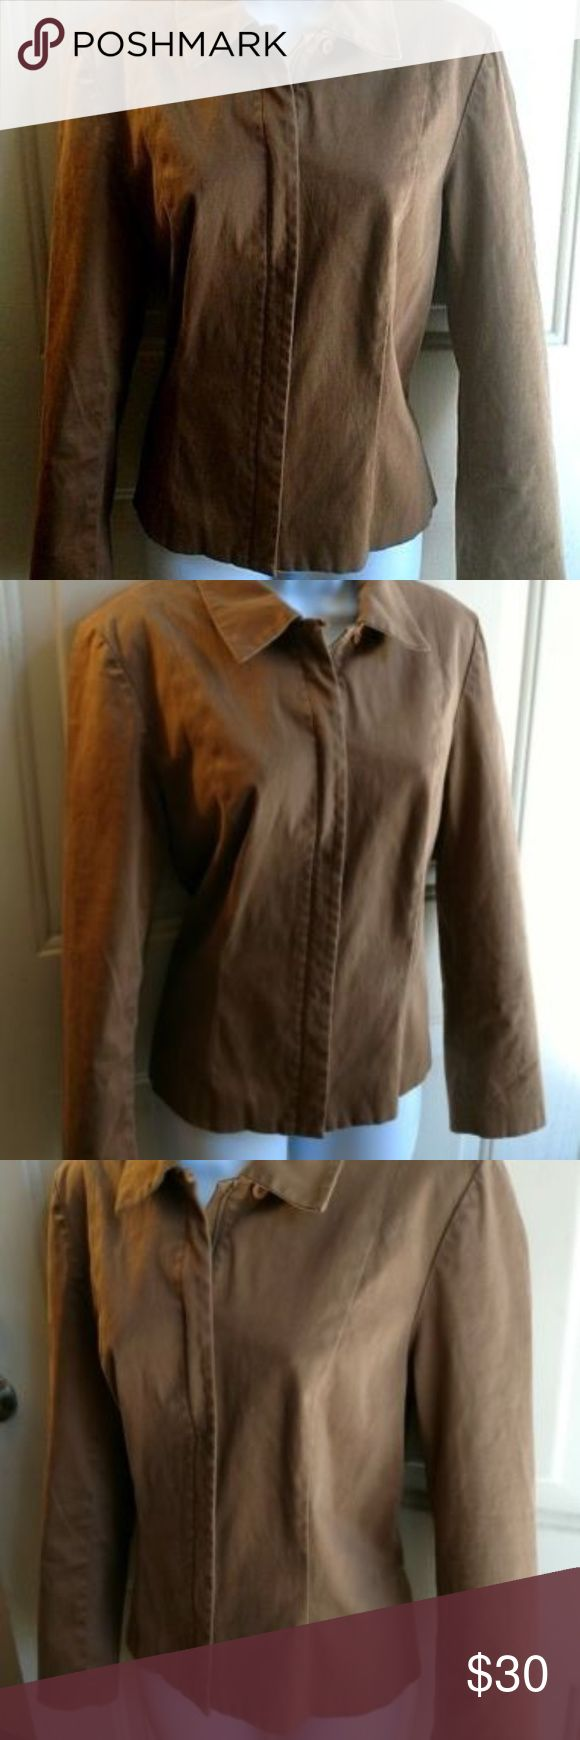 "Ann Taylor Womens Brown Faux Suede Zipper Jacket Ann Taylor camel brown faux suede zip up jacket. Size medium. Has a little stretch. Gently used with no flaws.   Chest: 18""  Length: 24""   B5-004 Ann Taylor Jackets & Coats"